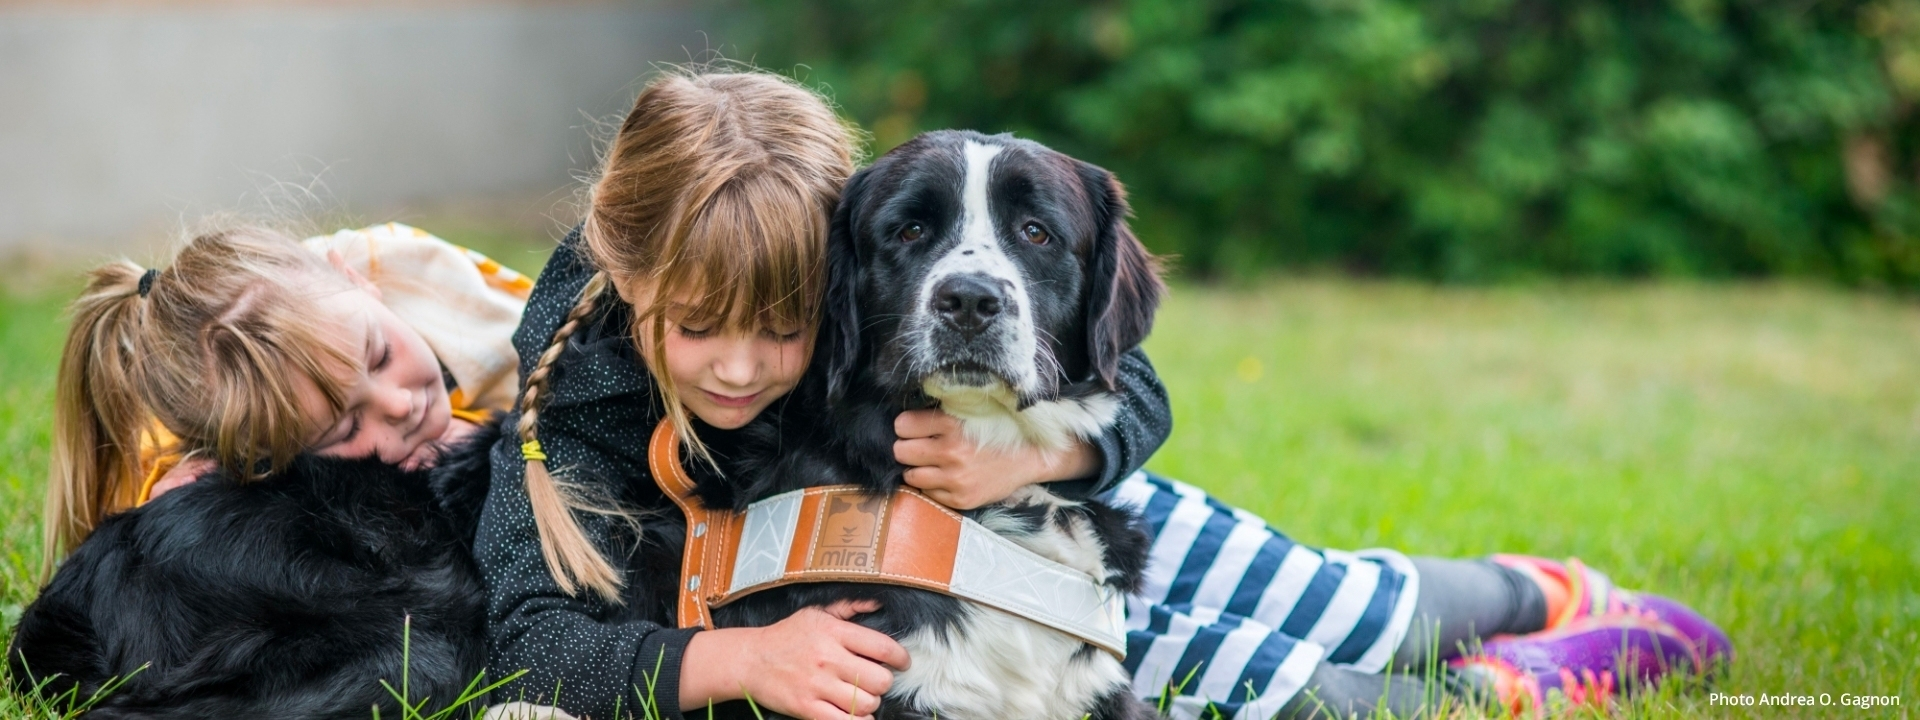 Two young girls hug a Labernois dog who has his Mira harness